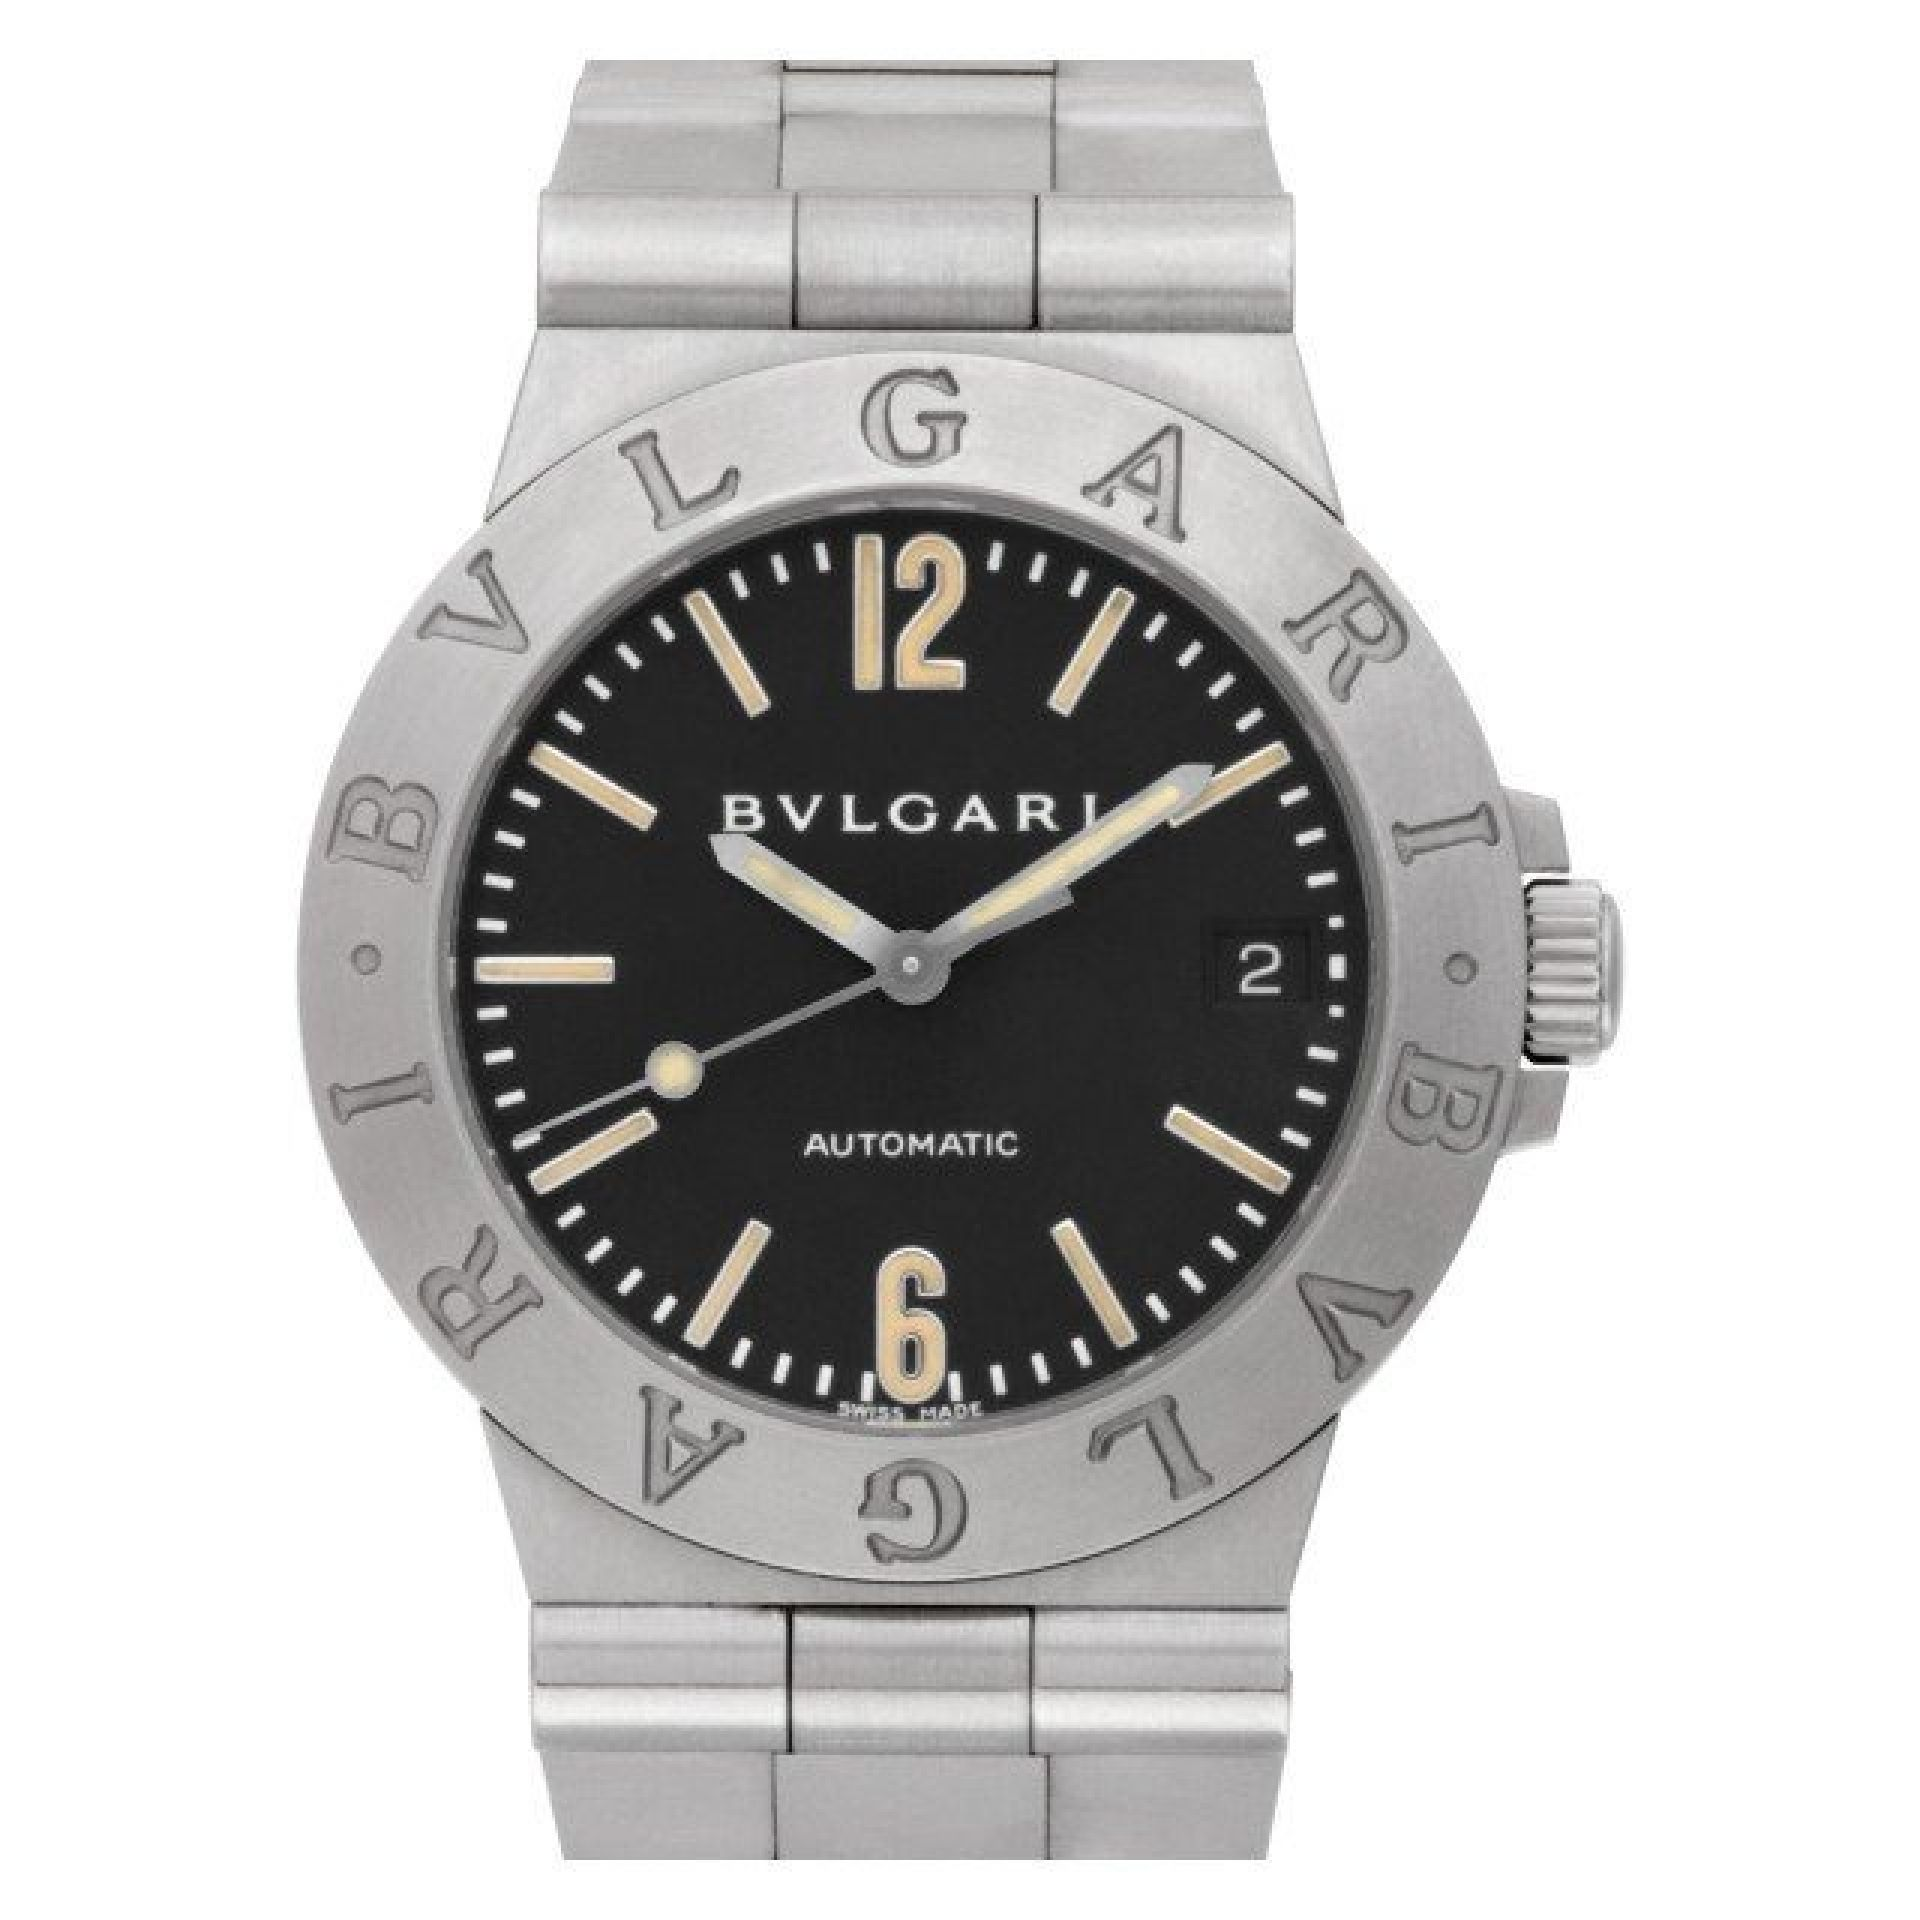 Bvlgari Diagono LCV 35 S Stainless Steel Black dial 36mm Automatic watch